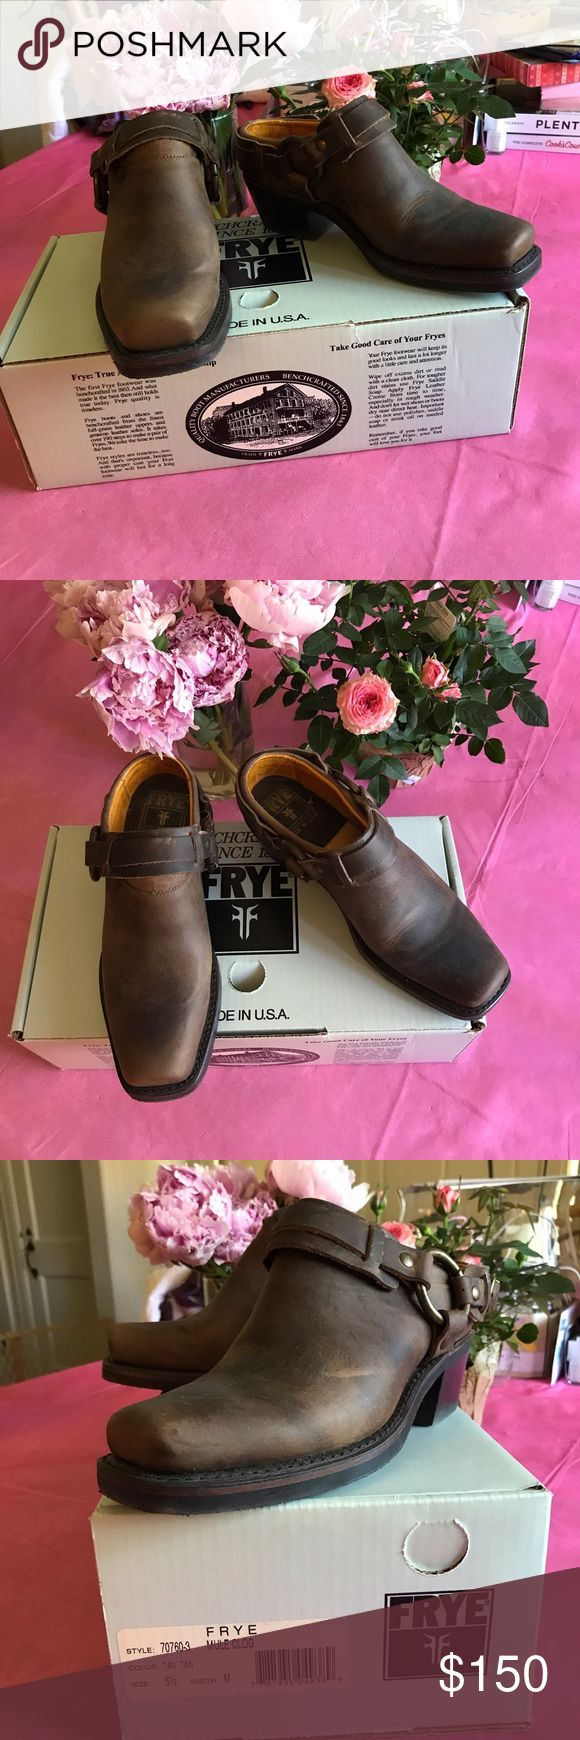 Frye Mule Clog in Tan Size 6.5 This pair of Frye Mule Clogs have been worn once! No really show of the wear. They have a harness around the ankle and are low on the ankle. Frye Shoes Mules & Clogs